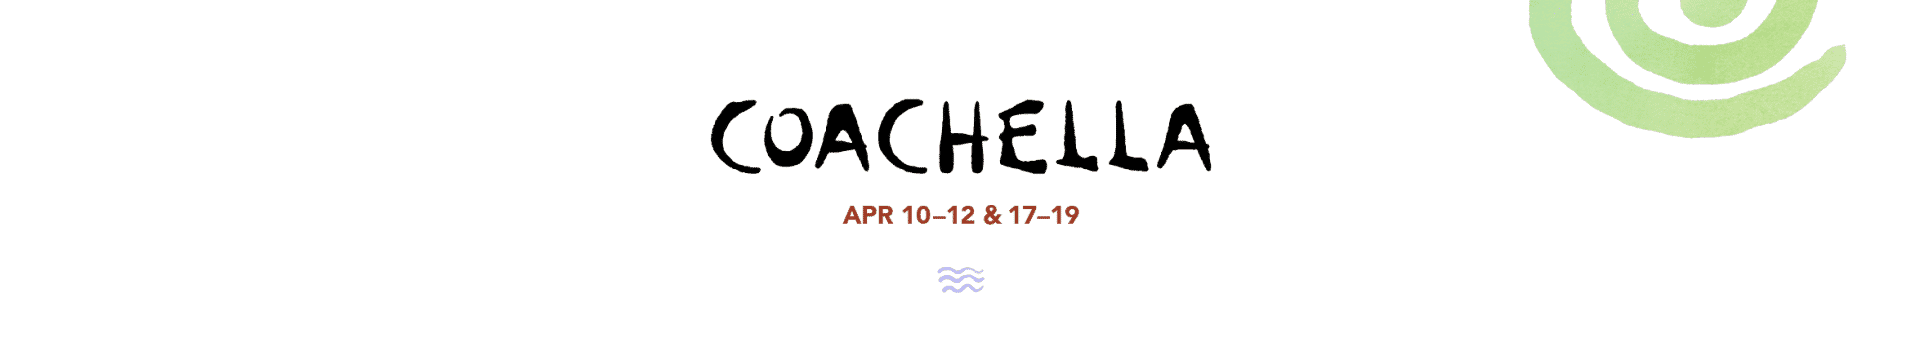 Coachella 2020 FAQs